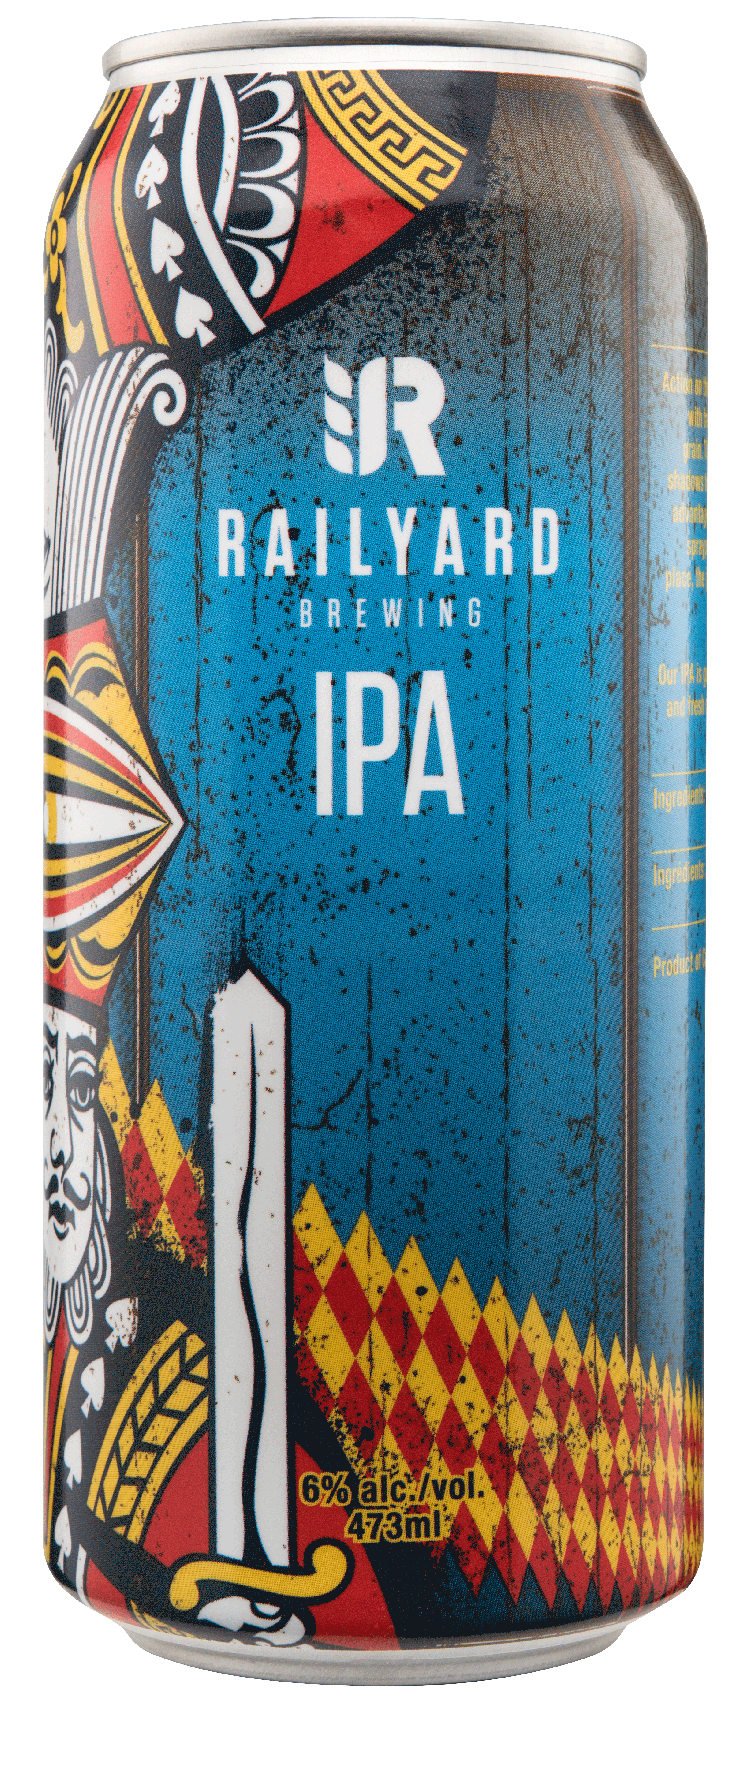 RAILYARD IPA   Travelling down the tracks from the West Coast comes the Railyard IPA. Stunning floral aromatics, classic orange peel & grapefruit citrus palate & finishes with a hint of pine. Balanced with caramel malt, pouring crystal clear & finishing clean as a train whistling rolling in. This is sure to satisfy.